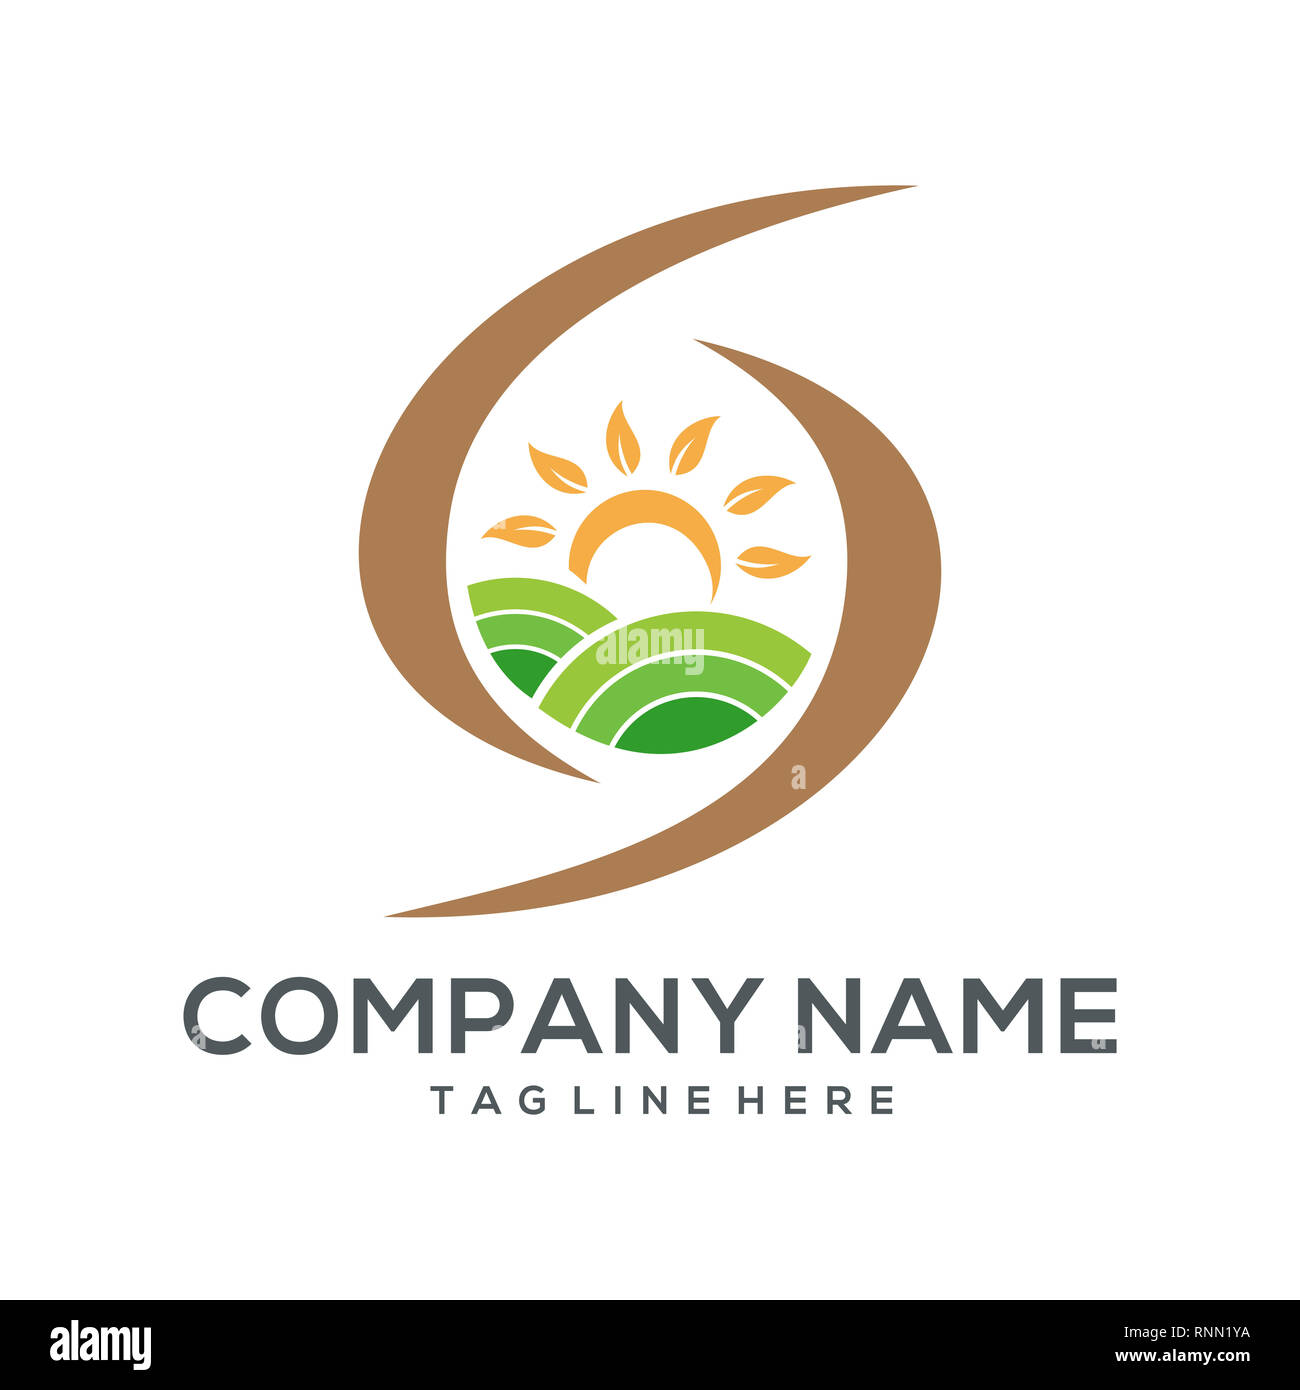 Agriculture Logo Stock Photos & Agriculture Logo Stock